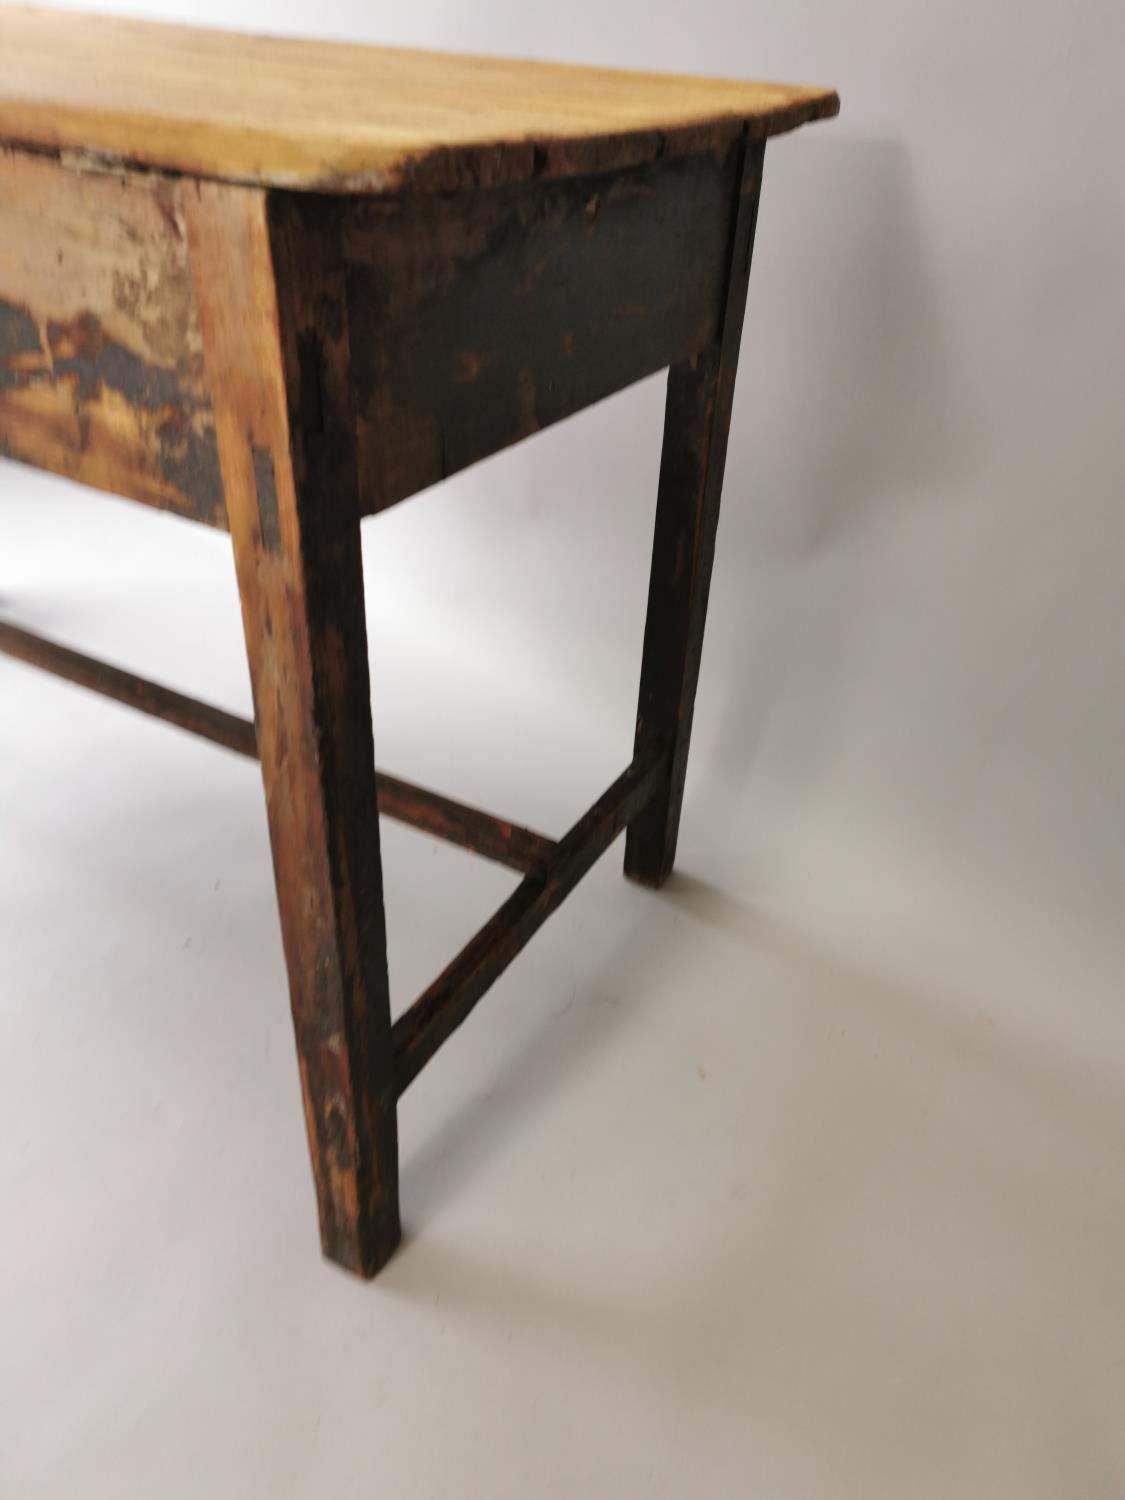 19th. C. painted pine table - Image 7 of 7